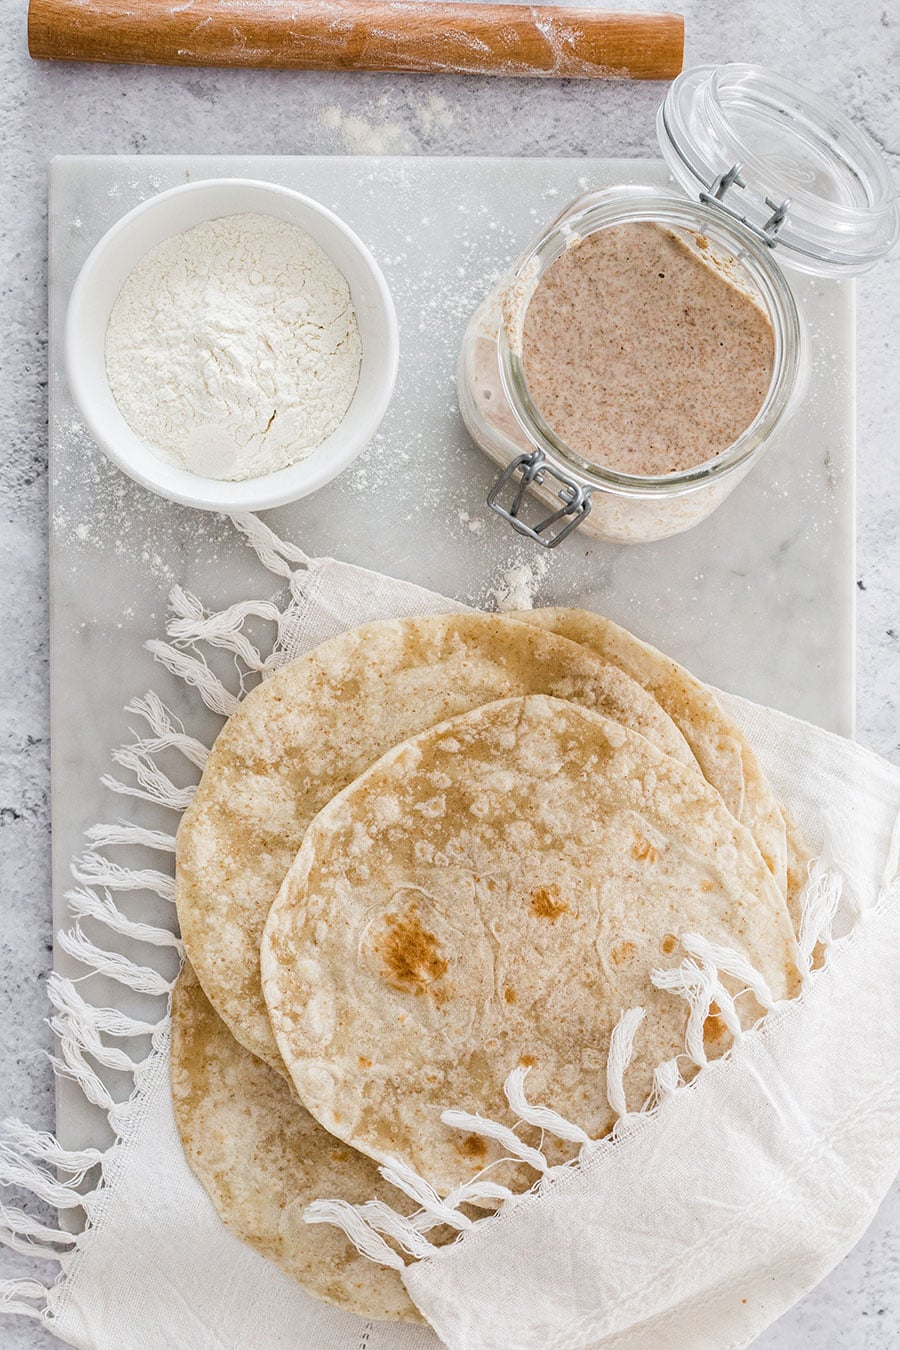 Flour tortillas from above and a sourdough jar near by.